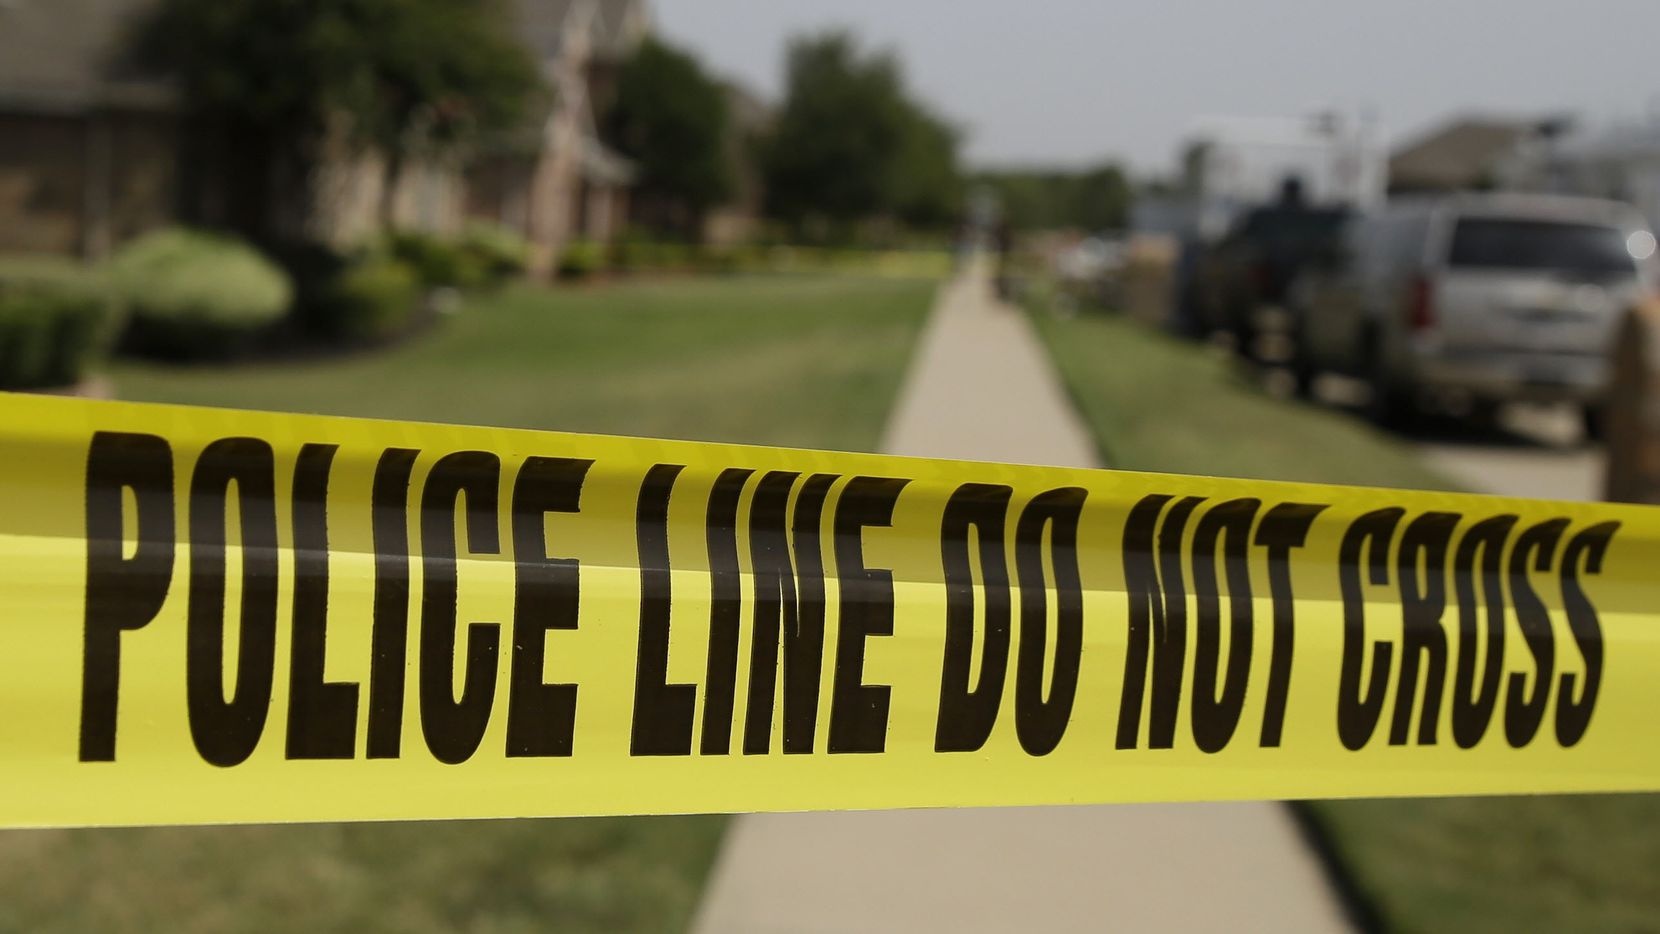 Crime scene tape marks off an area law enforcement investigators were working outside the house of a fatal shooting Aug. 8, 2013, in DeSoto, Texas.